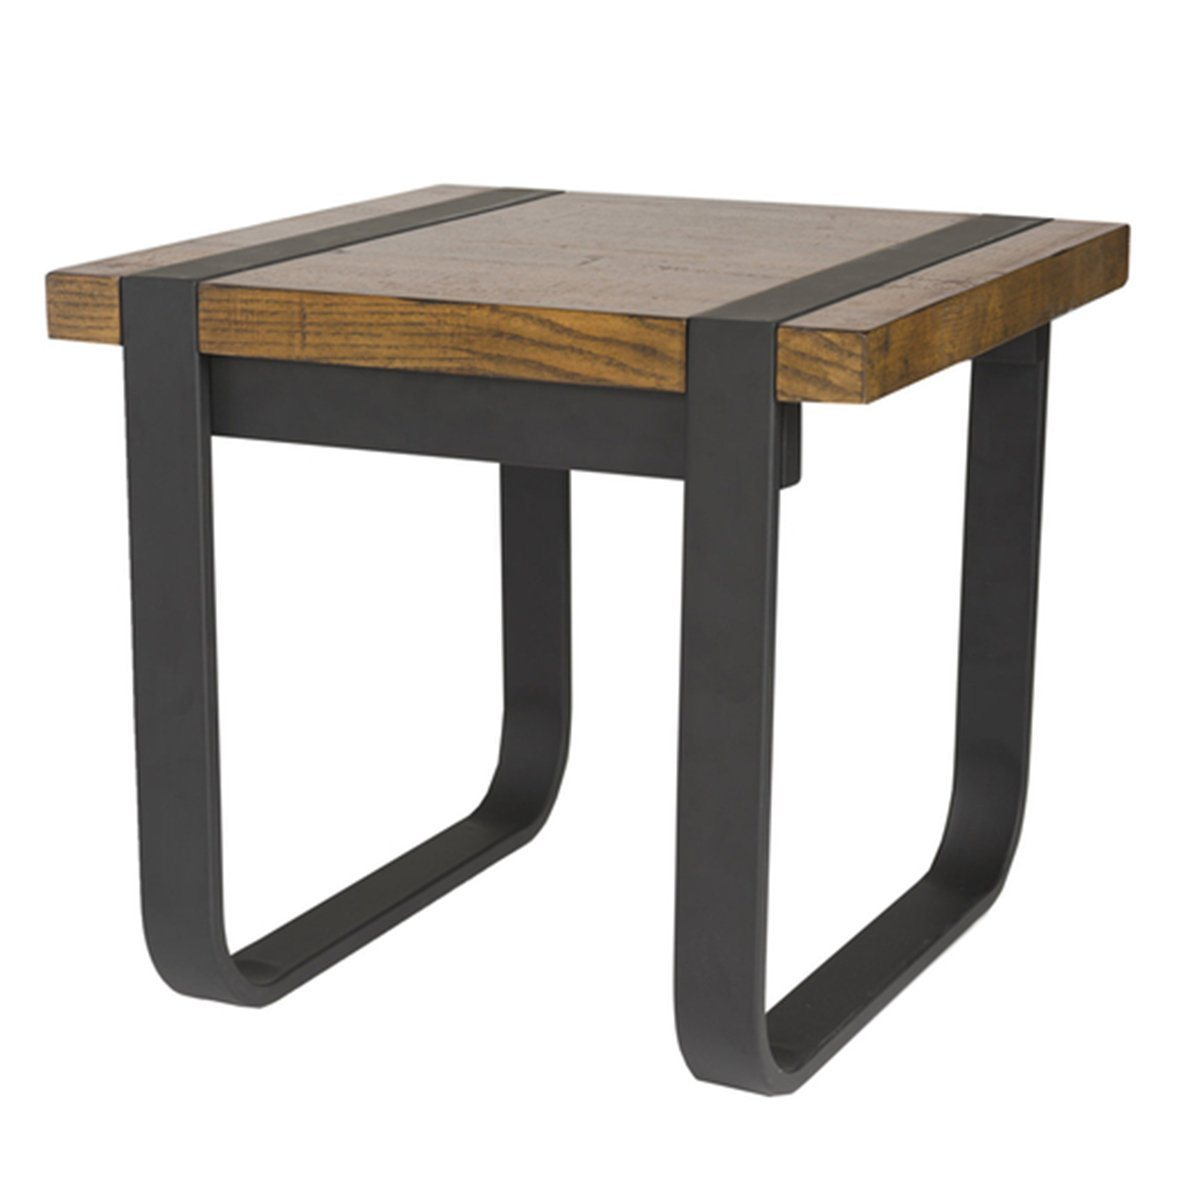 BROOKLYN END TABLE End Table LH